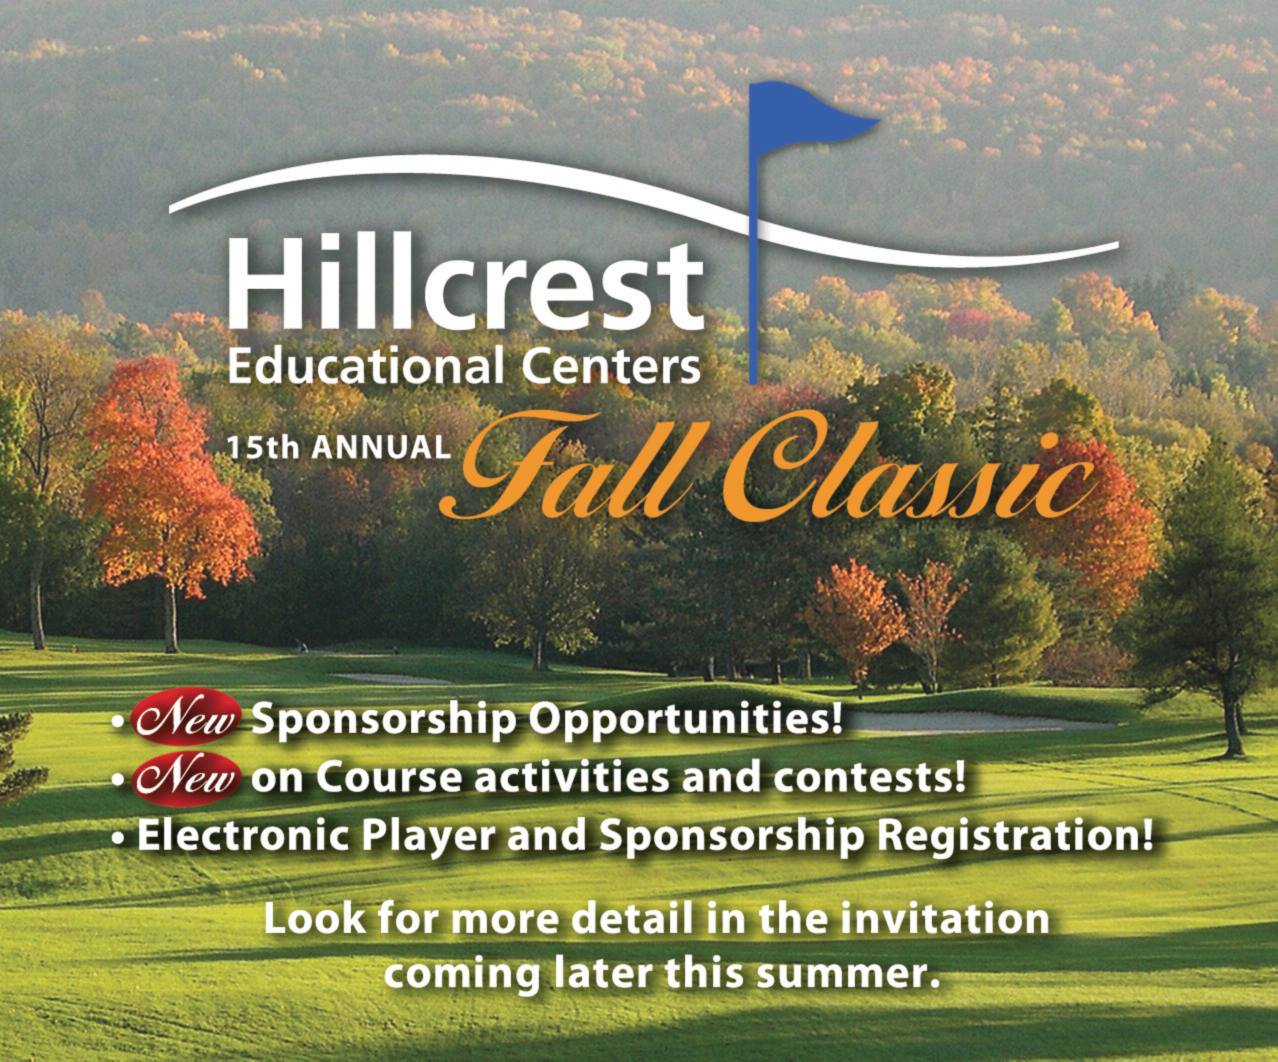 Hillcrests Spring Gala And Fall Classic Golf Tournament, Berkshires, Western Mass